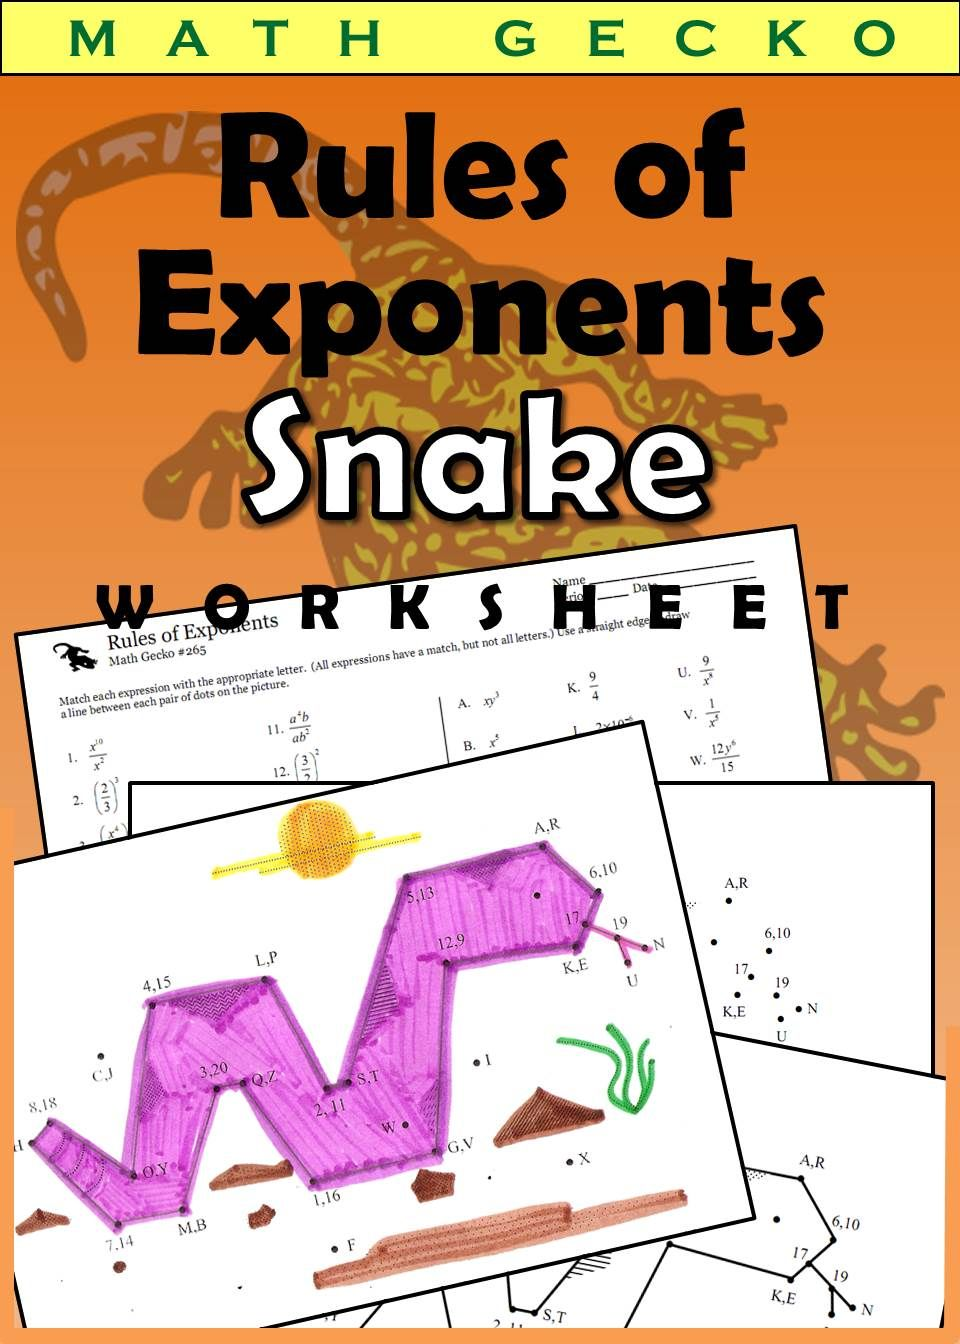 Rules Of Exponents Iii Picture Snake Math Expressions Simplifying Algebraic Expressions Algebraic Expressions [ 1344 x 960 Pixel ]